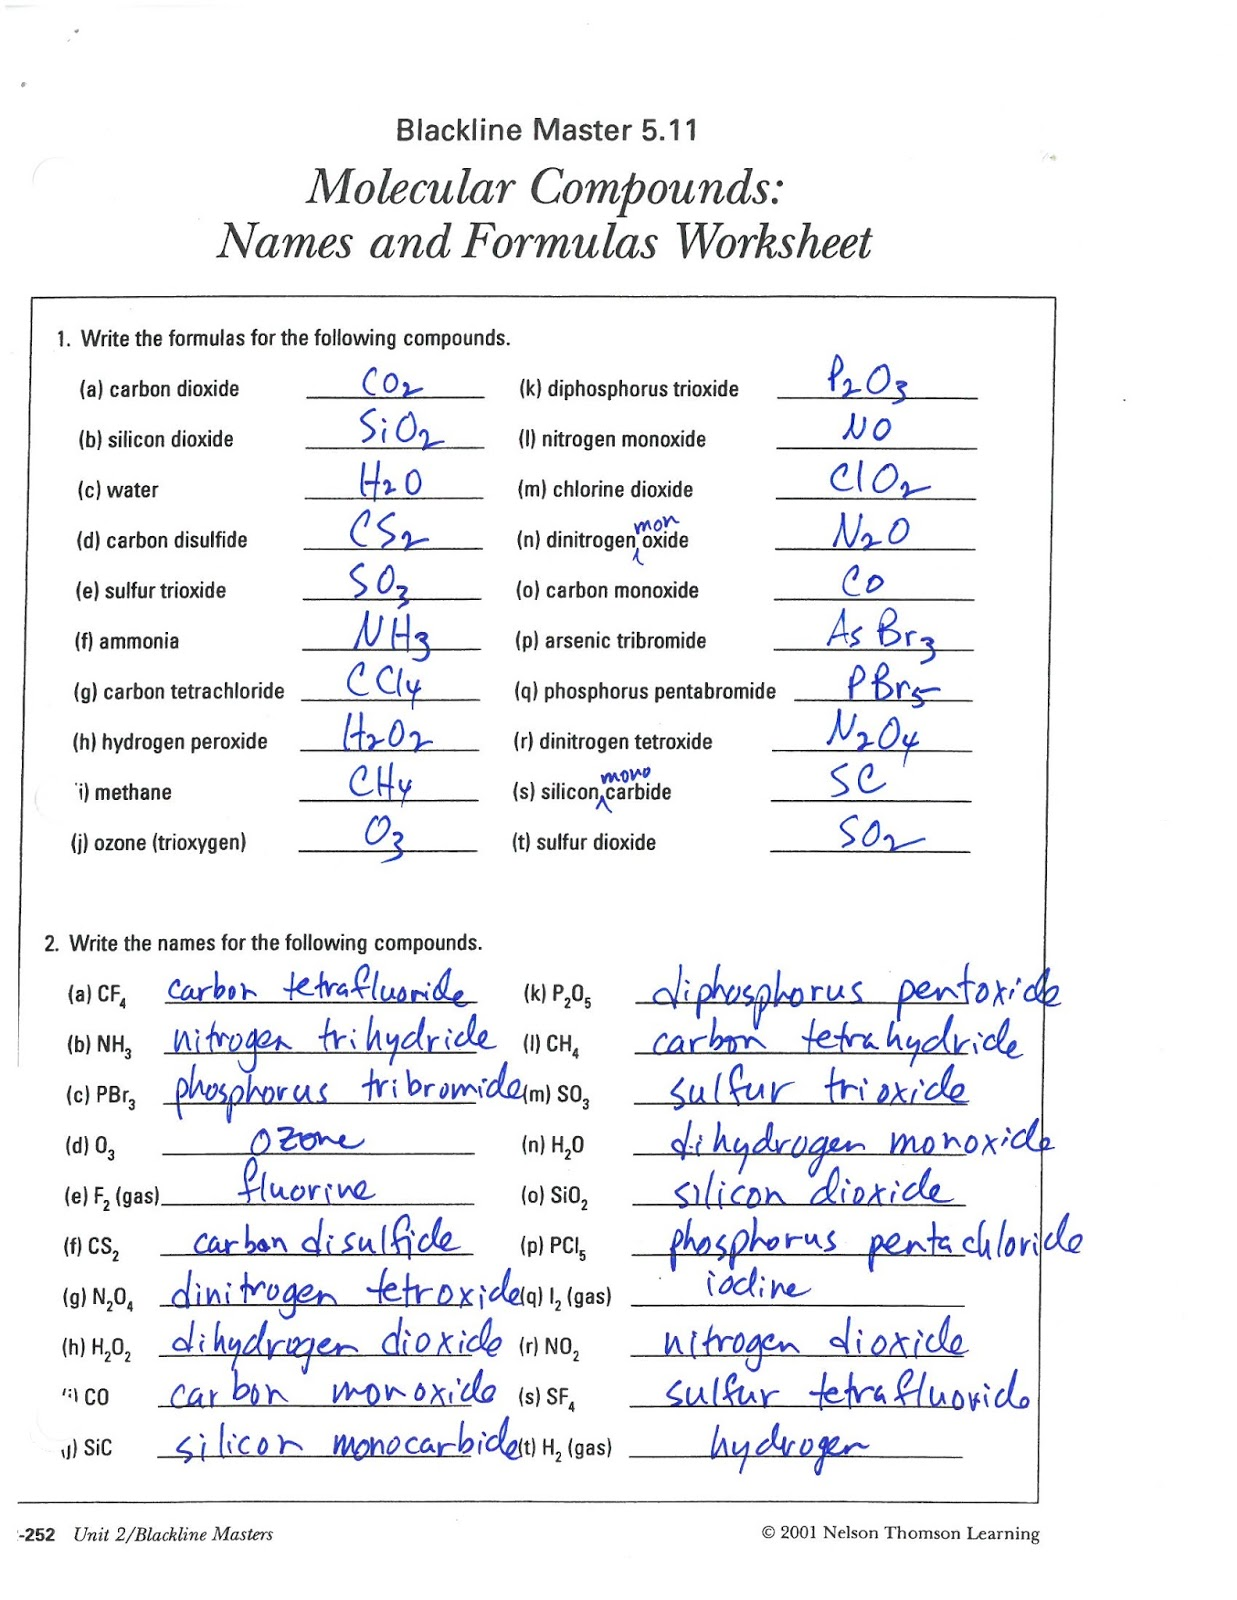 ionic and molecular compounds on line Based upon your observations, place each substance into one of the following categories: ionic compound, polar covalent compound, or non-polar covalent compound based on the data given for the solubility in hexane, is hexane a polar or non-polar covalent solvent explain.